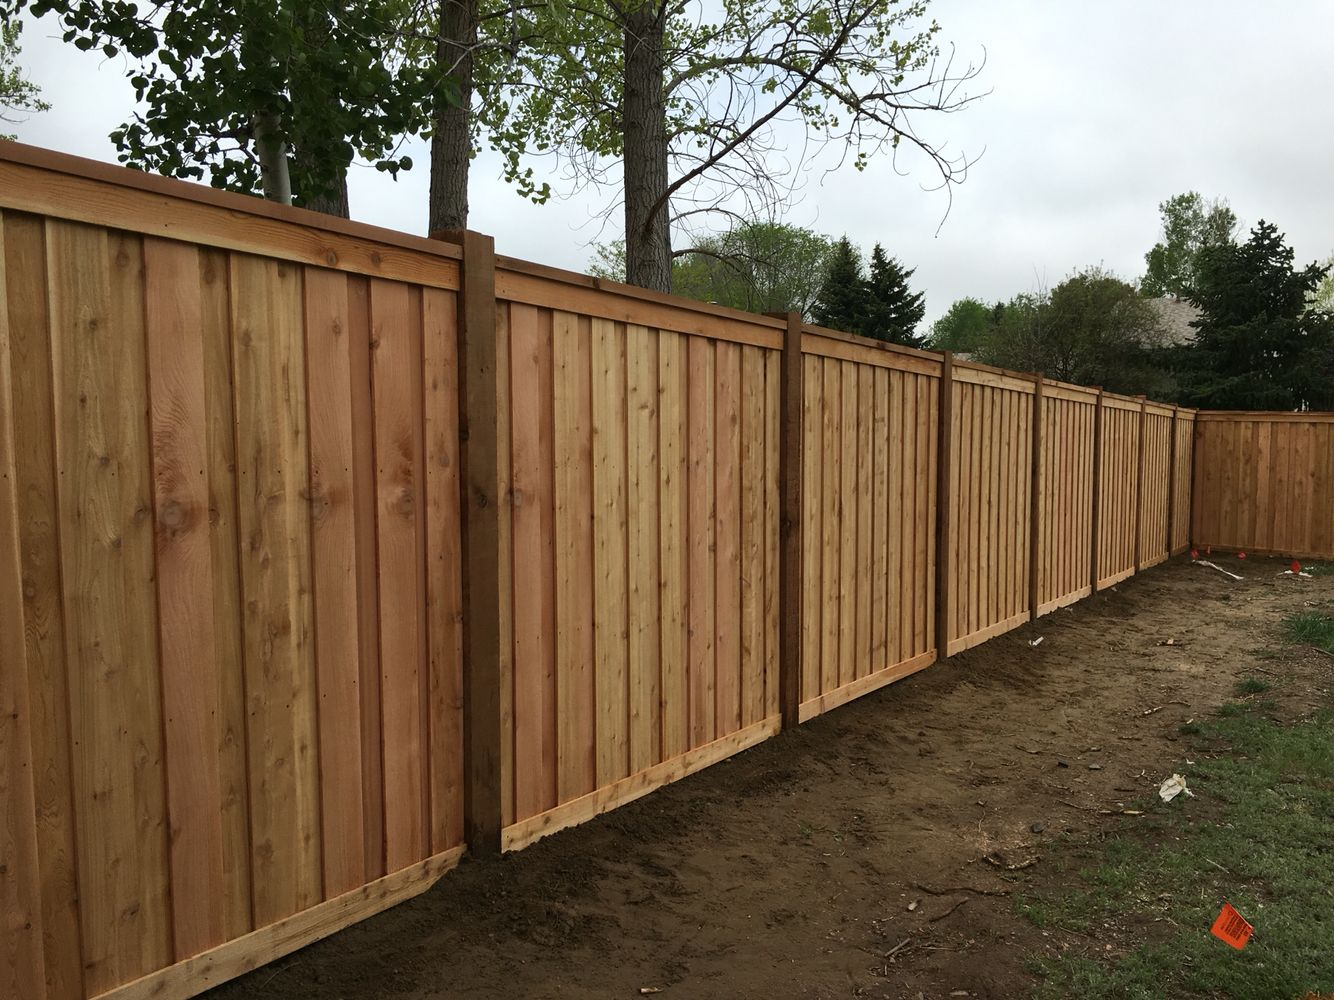 Great Privacy Fencing Ideas For Your Home Fence Designs Front Yard And Backyard Include Horizontal Lattice Top Brick Metal Styles Much More